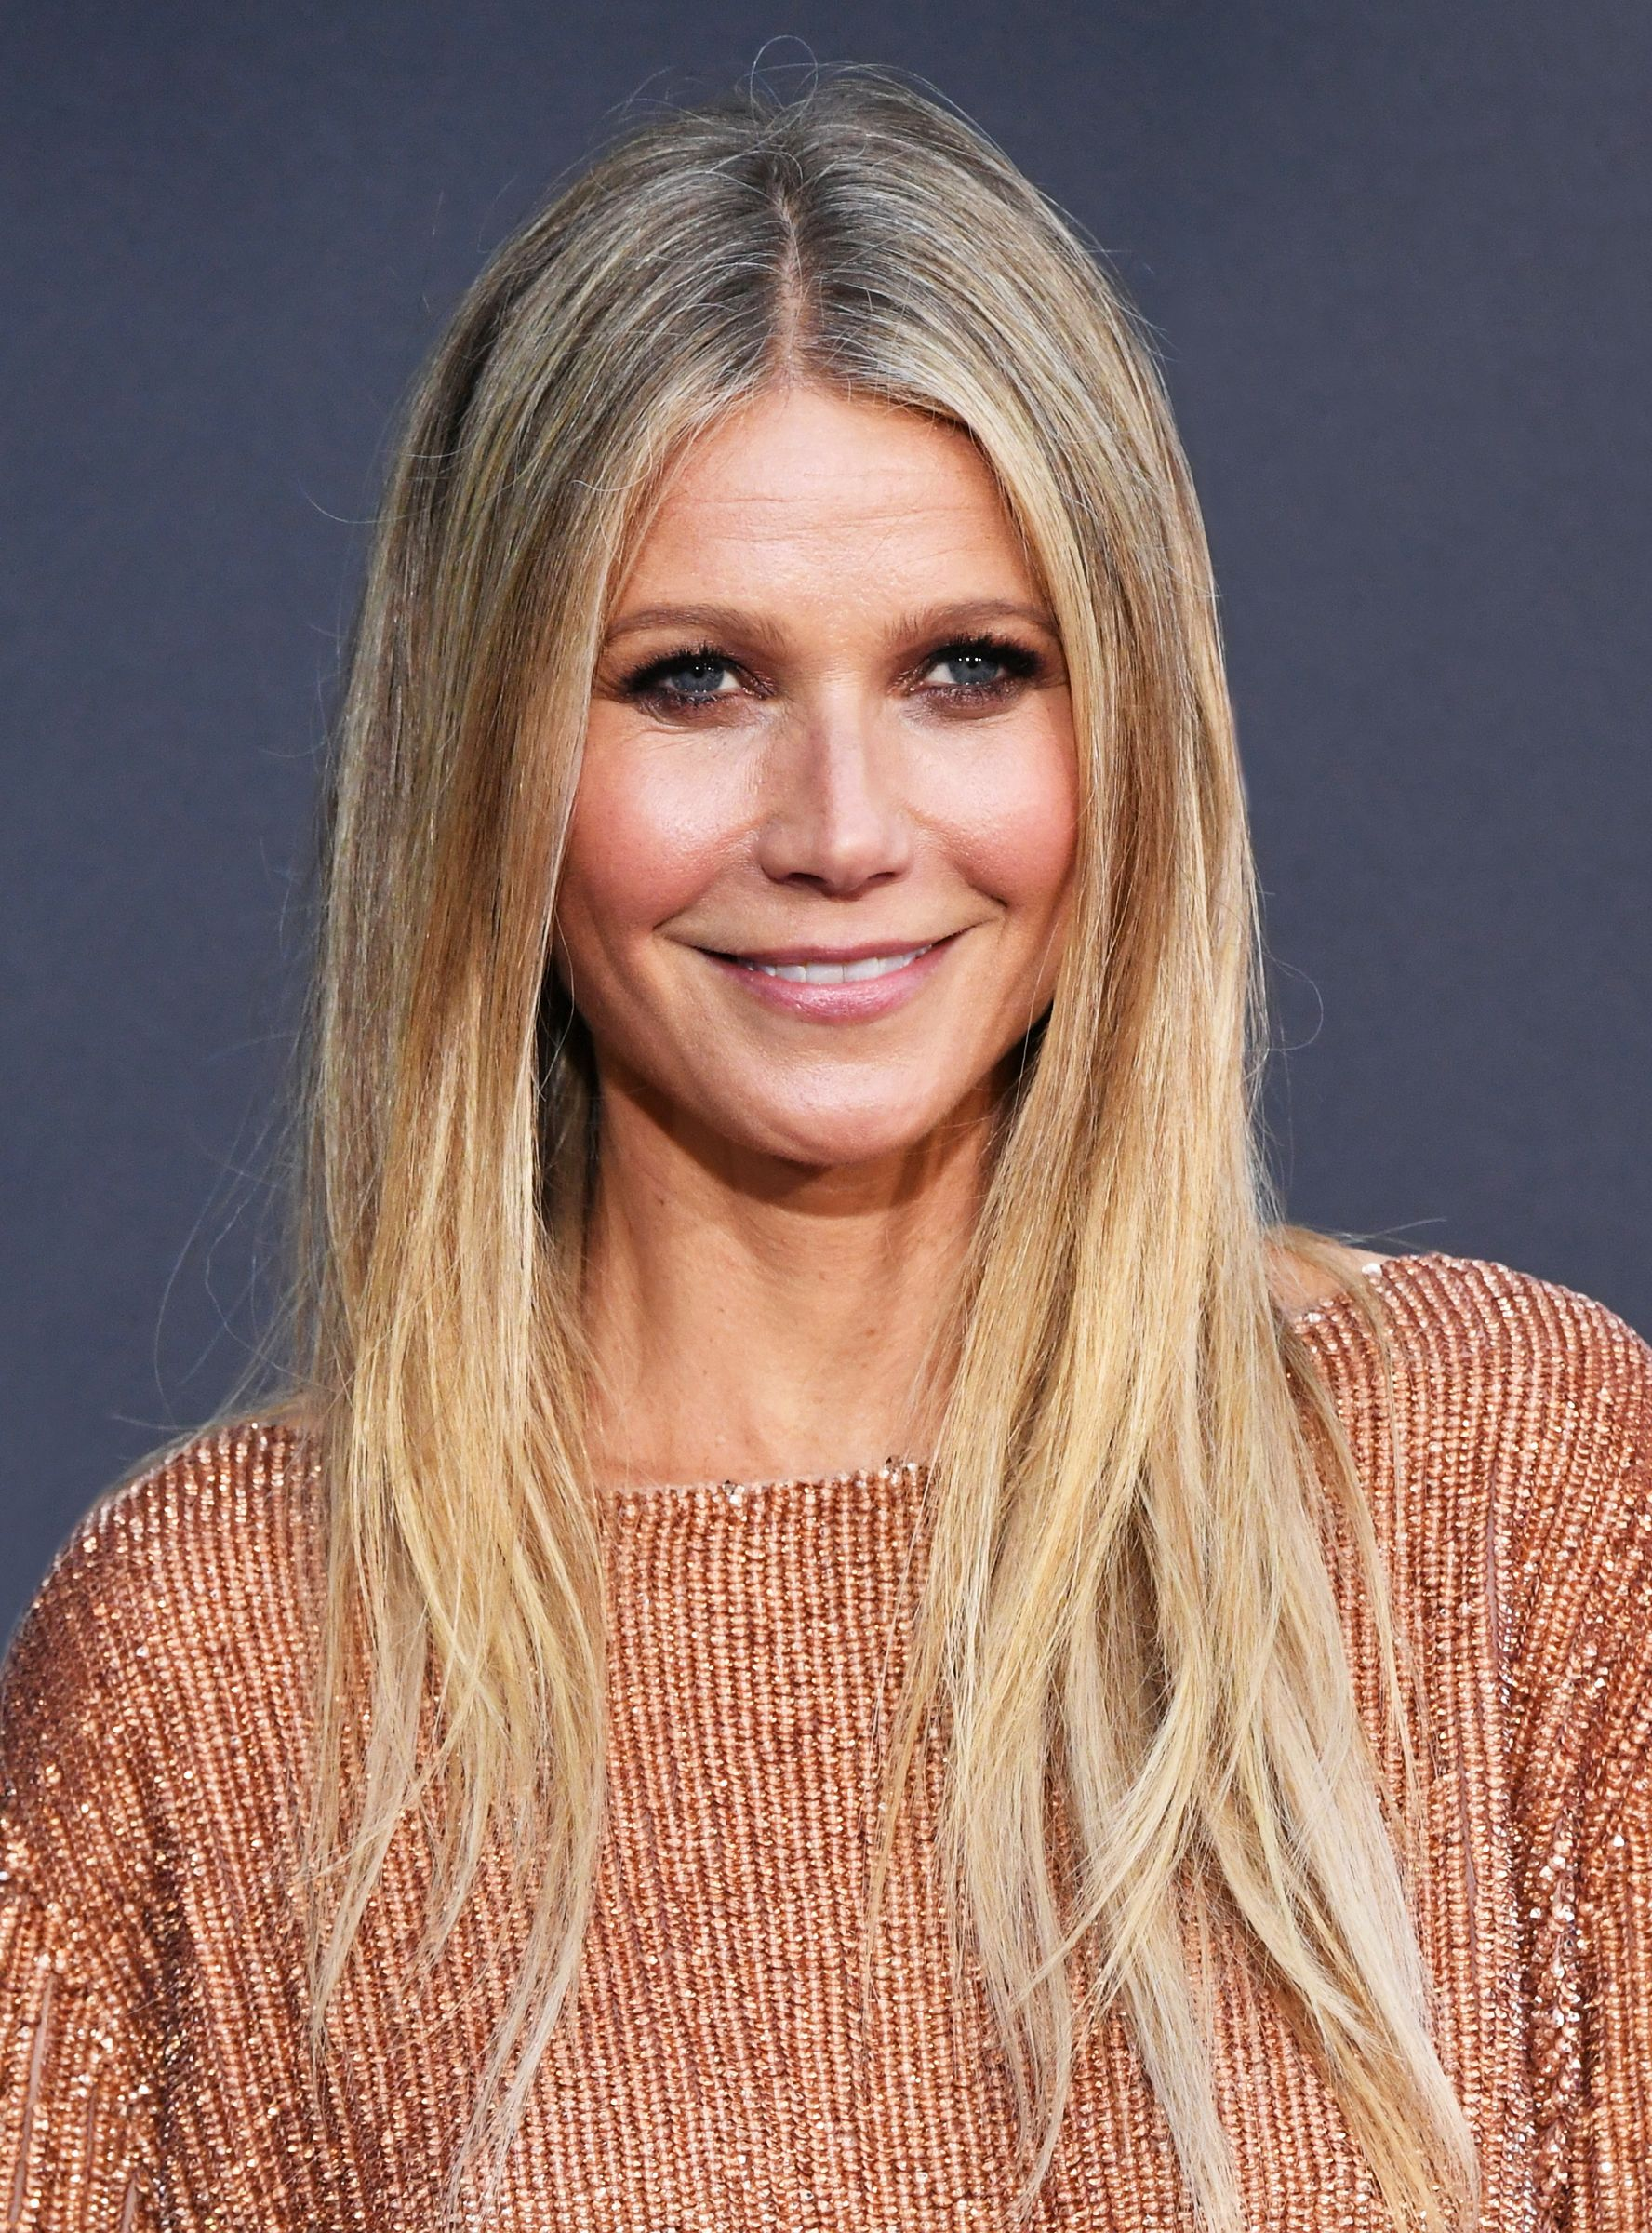 A Bad BreakUp Almost Cost Paltrow Her Most Iconic